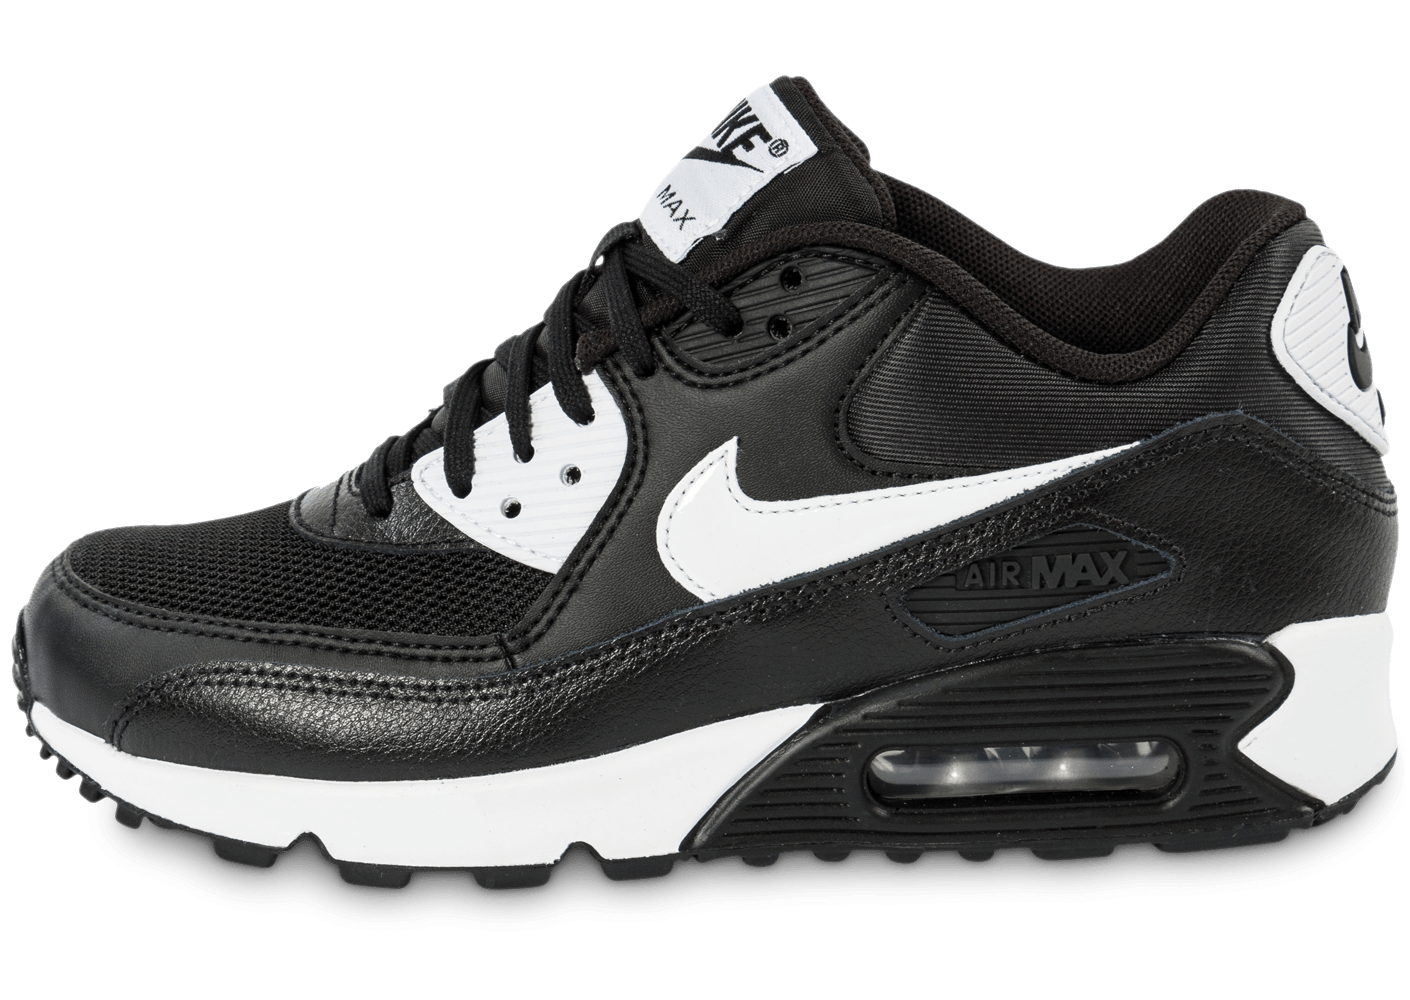 huge selection of ff448 c8054 nike air max 2017 chausport, Cliquez pour zoomer Chaussures Nike Air Max 90  Essential noire